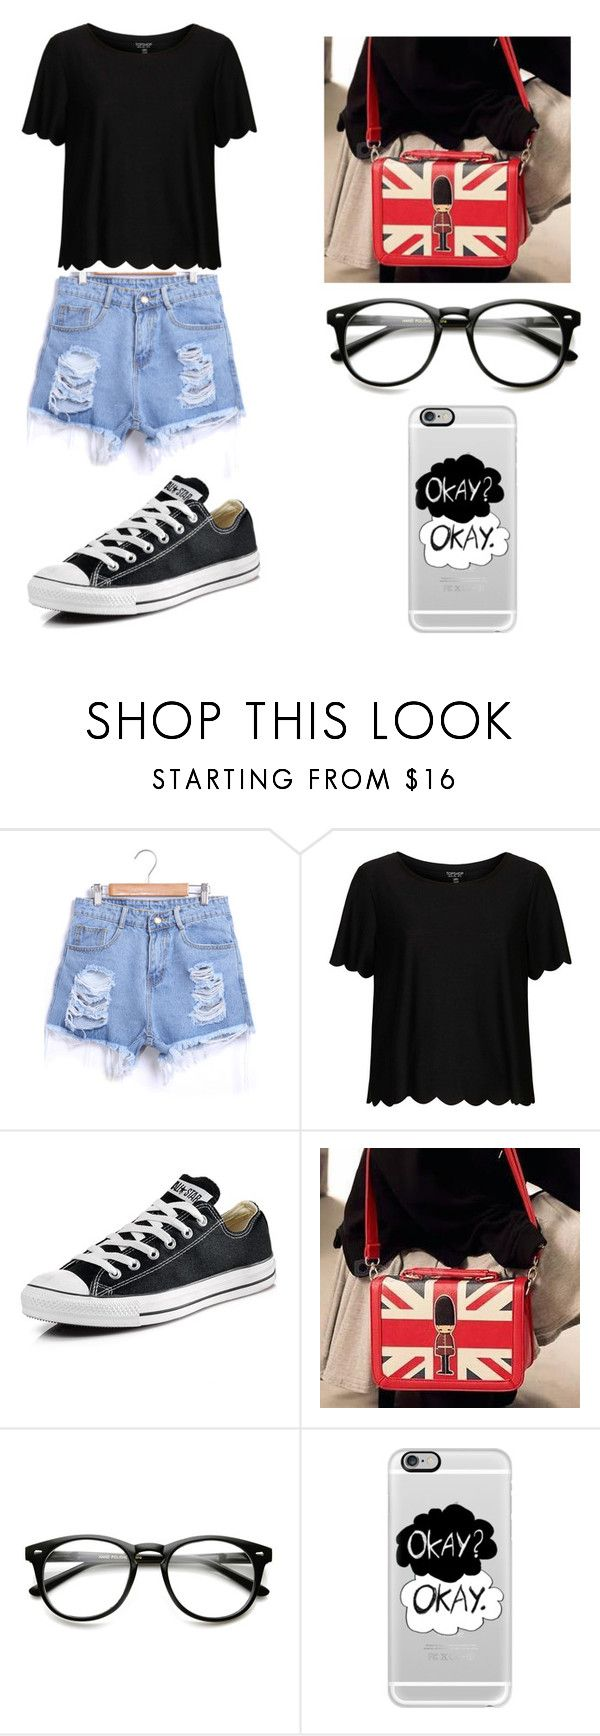 """""""Untitled #67"""" by karenrodriguez-iv on Polyvore featuring Topshop, Converse, PG Beauty, Casetify, women's clothing, women's fashion, women, female, woman and misses"""